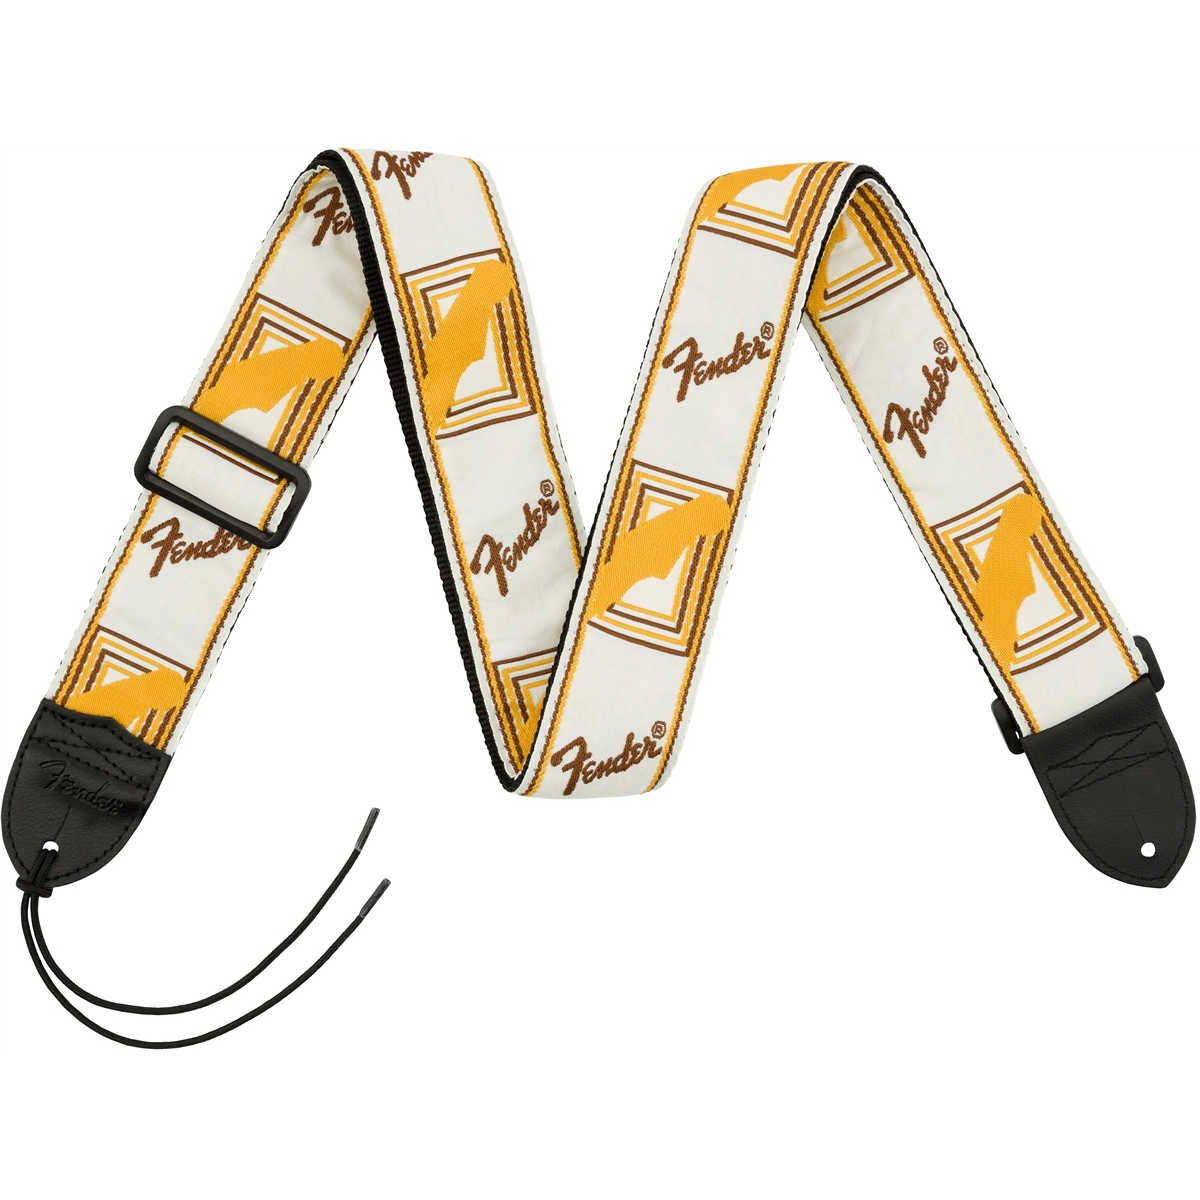 "Fender® 2"" Monogrammed Straps, White/Brown/Yellow"